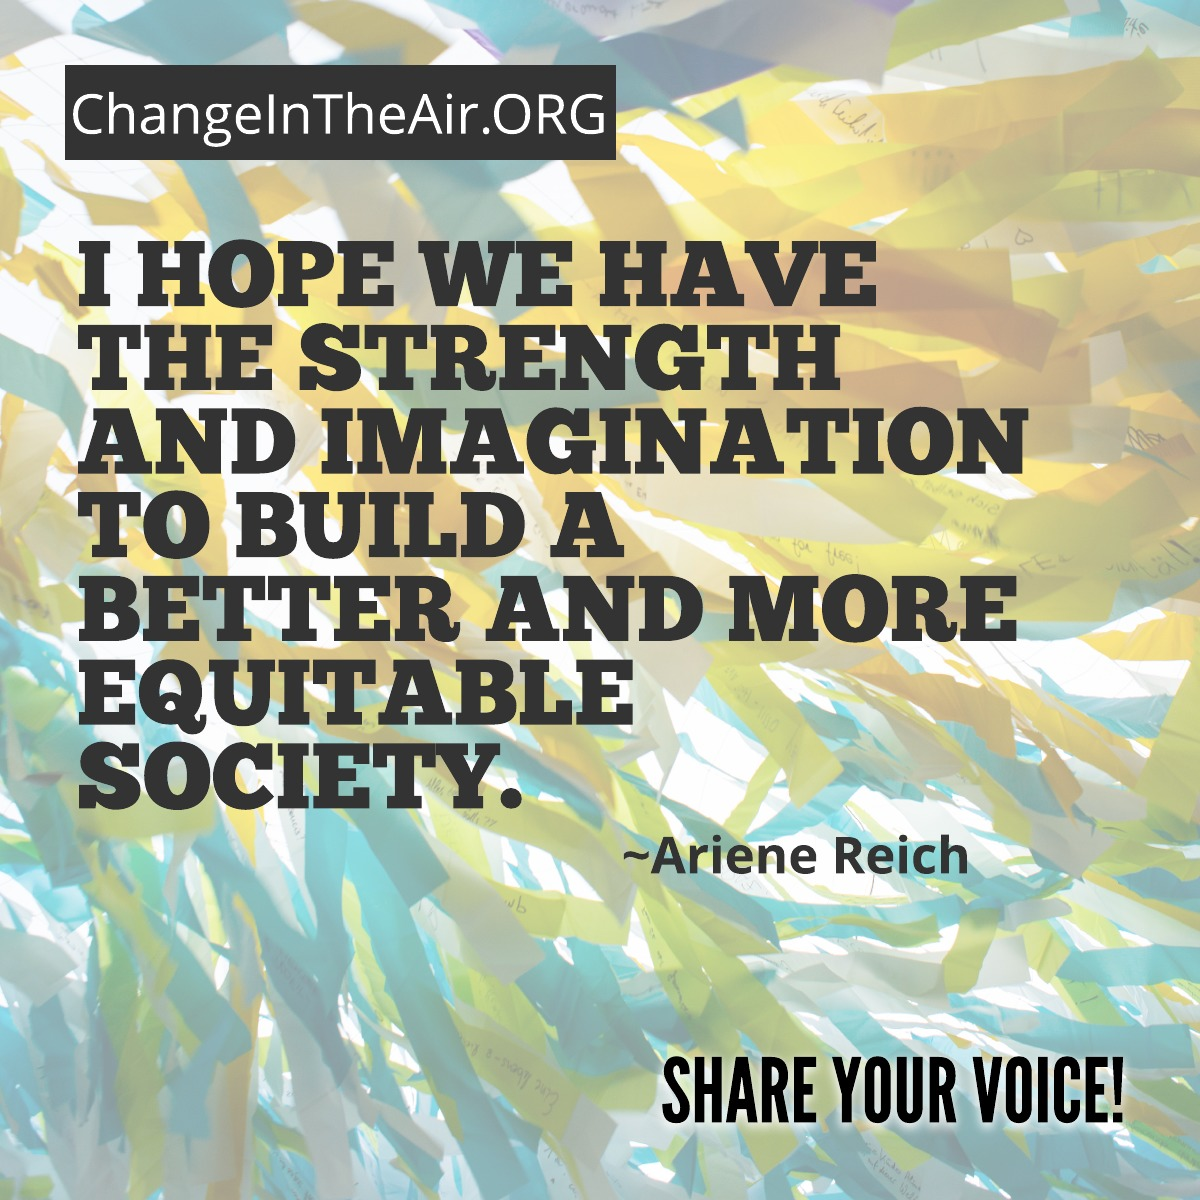 Change in the Air message. I hope we have the strength to build a better and more equitable society.